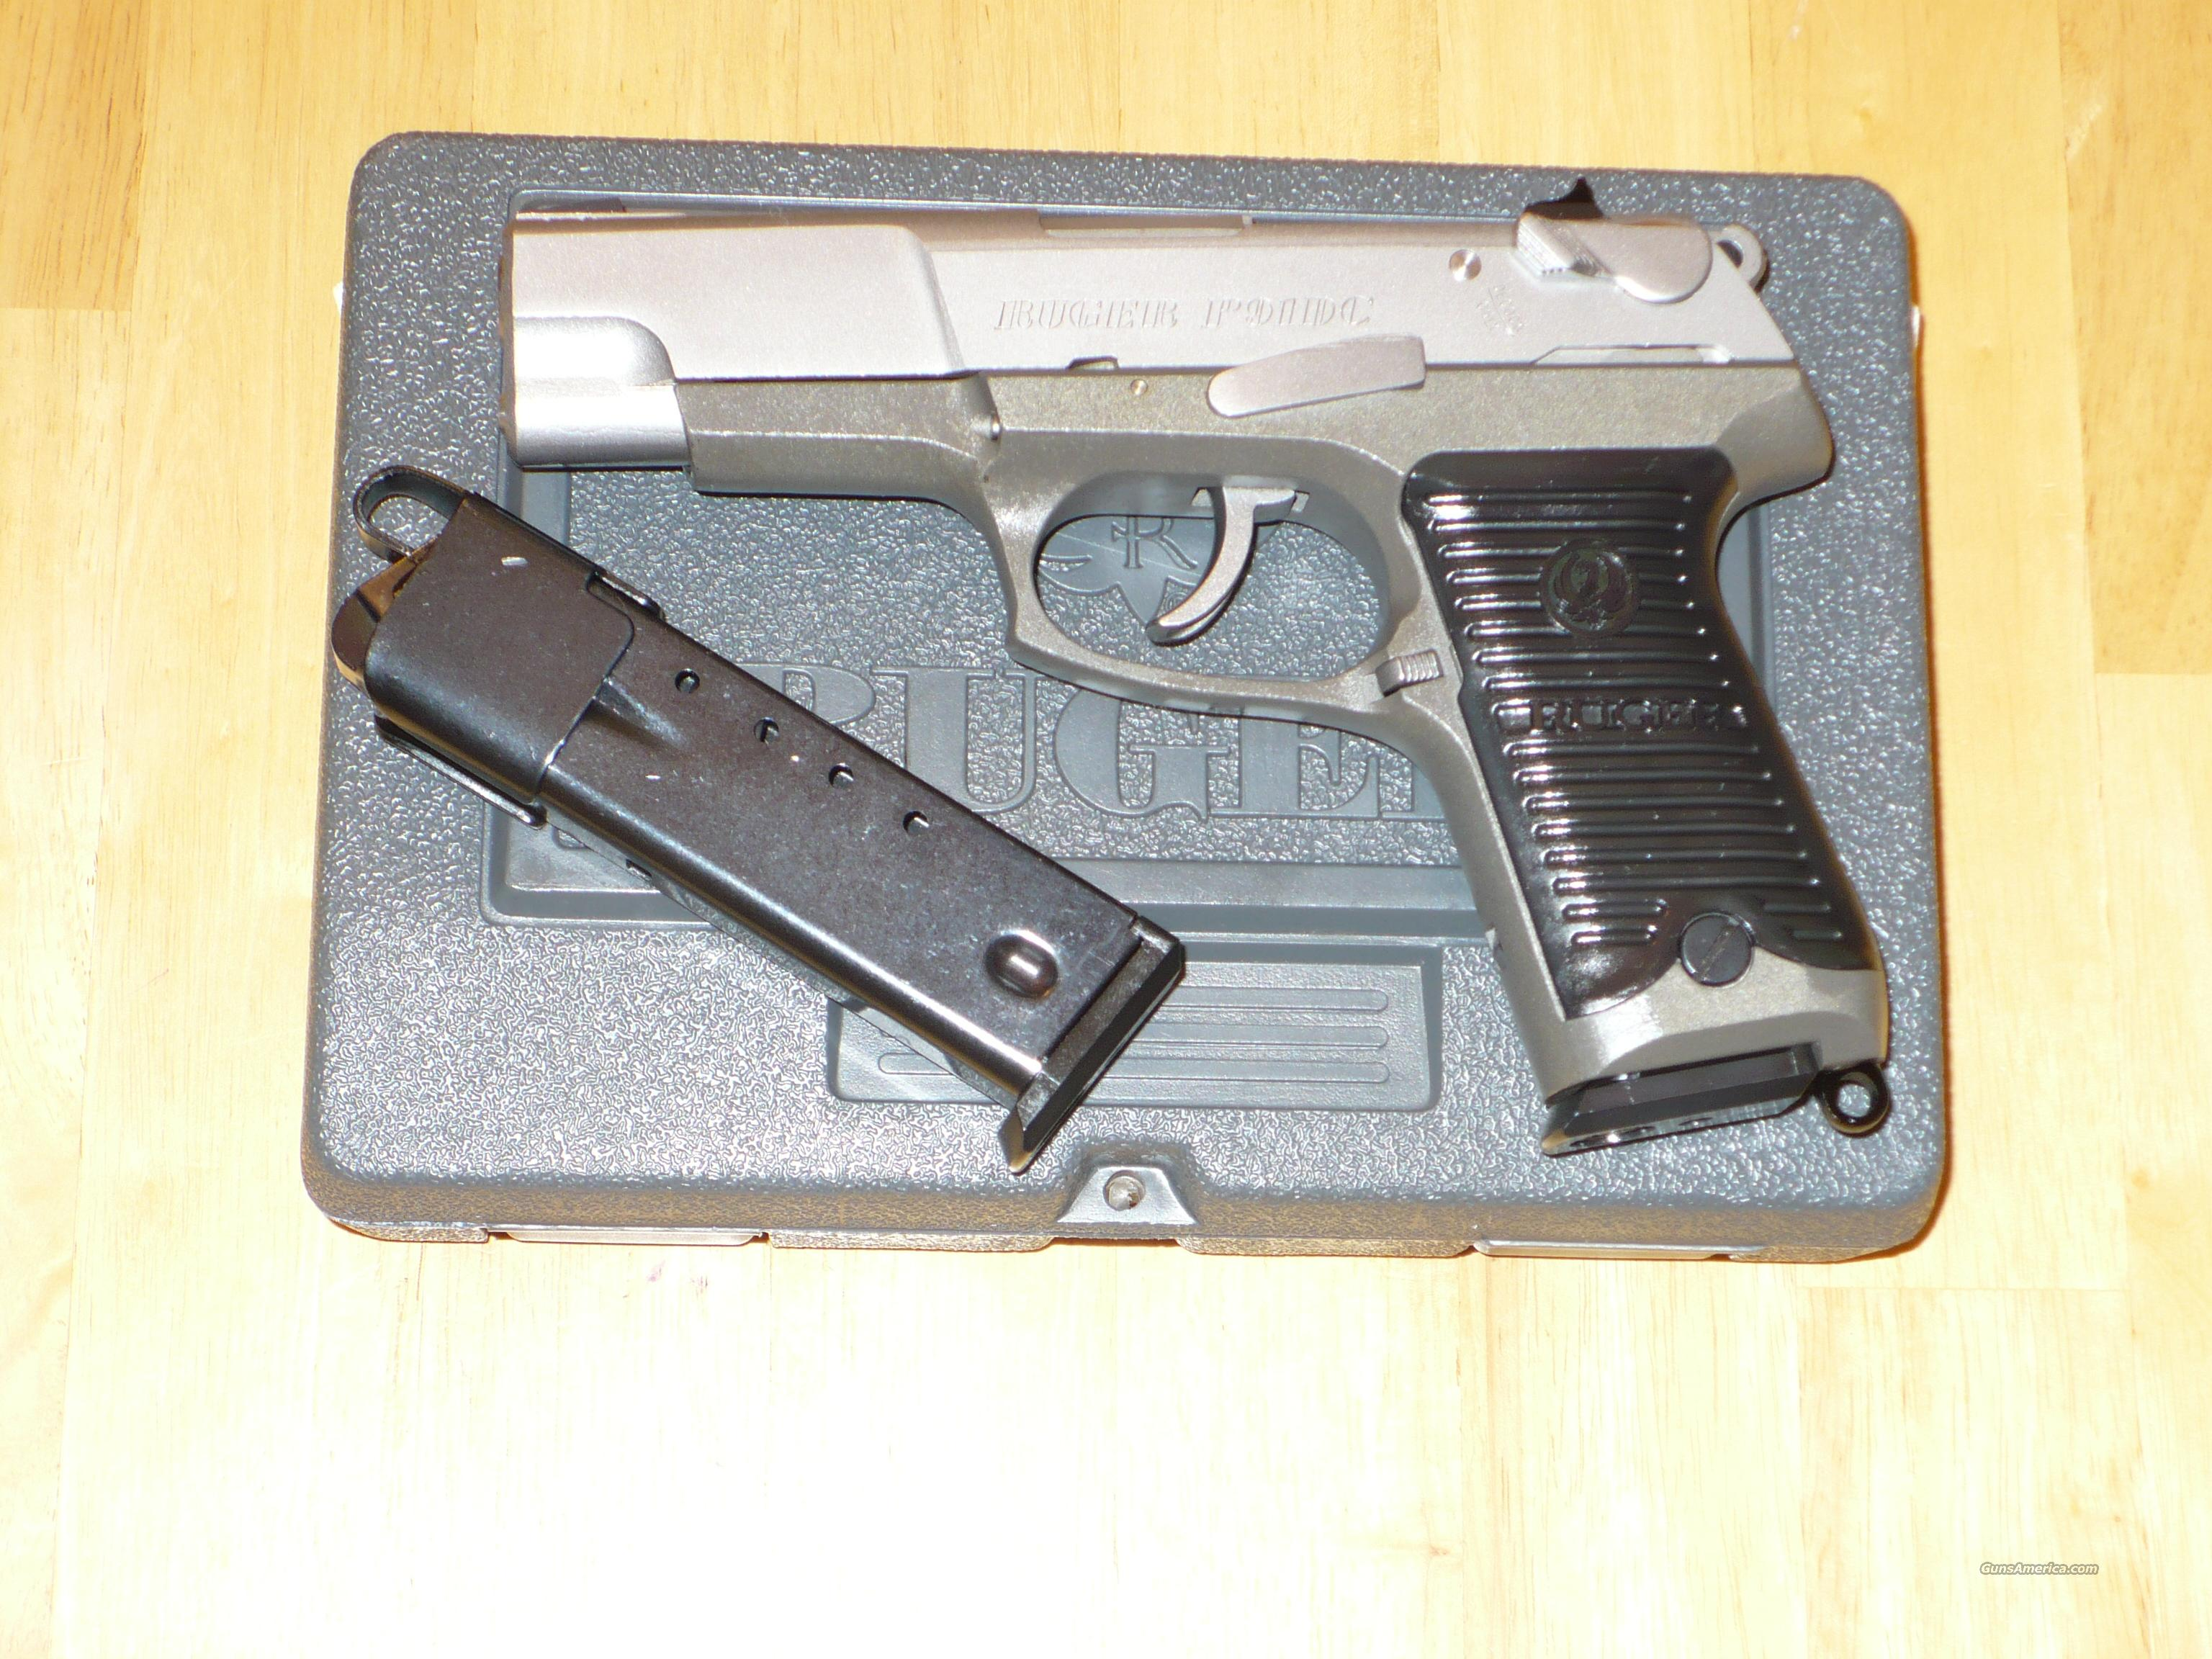 RUGER P91DC USED AS NEW IN ORIGINAL BOX WITH ALL PAPERWORK 2 MAGS AND IN MINT CONDITION  Guns > Pistols > Ruger Semi-Auto Pistols > P-Series